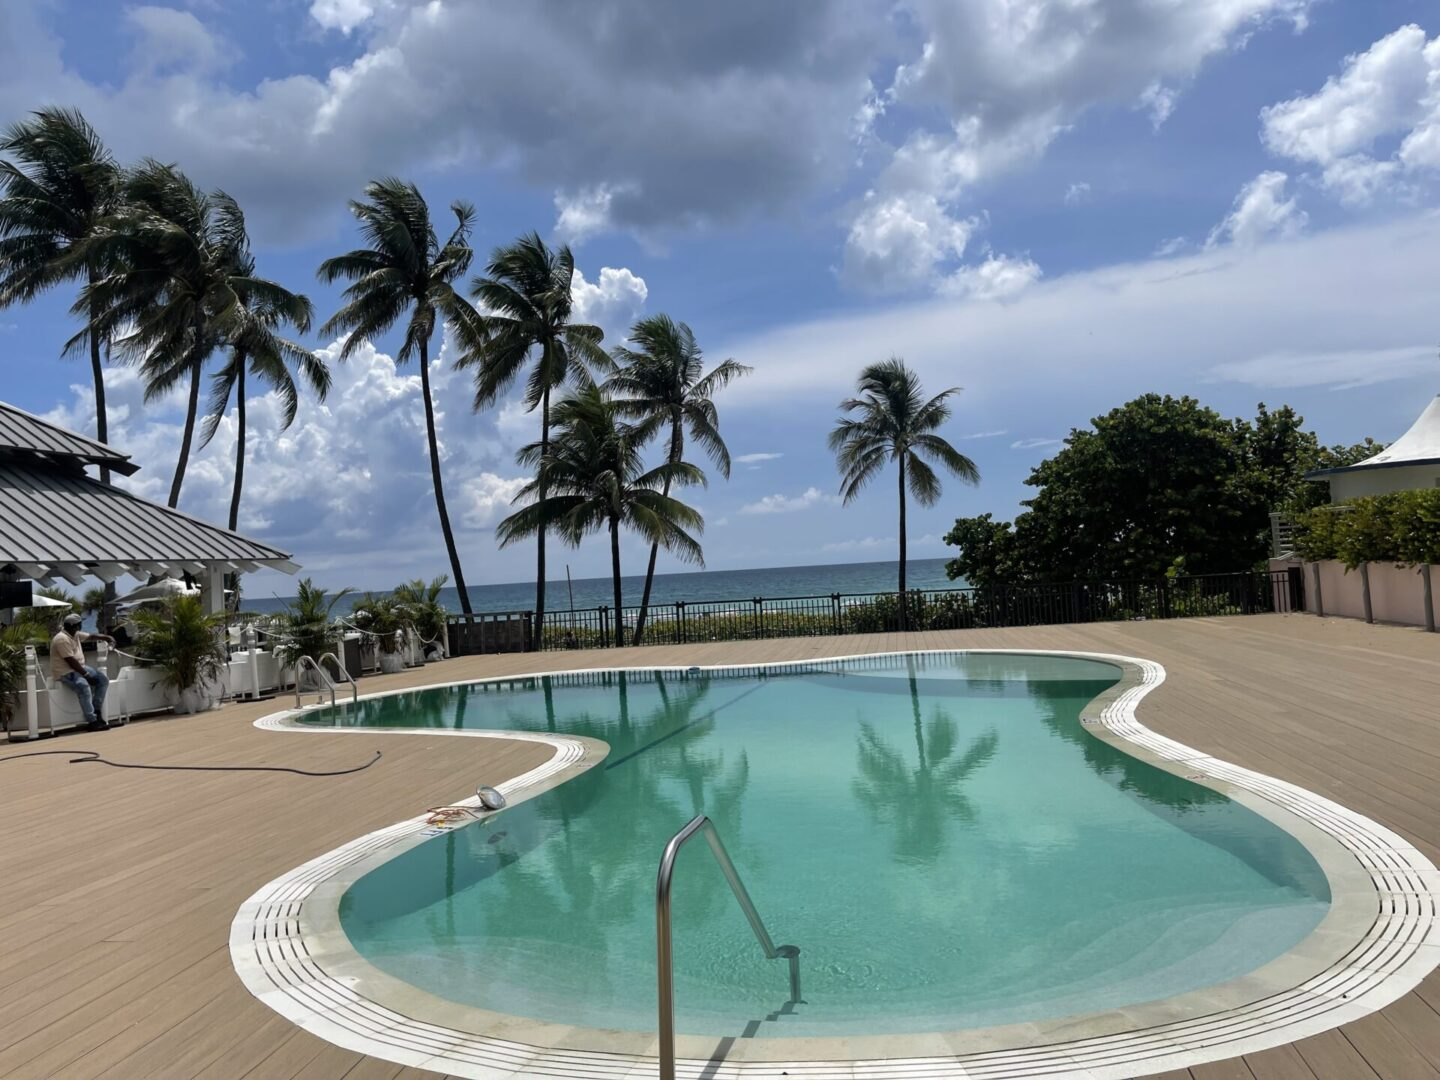 Small, curvy pool with floor tiles and palm trees and the beach in the background (landscape; afternoon)